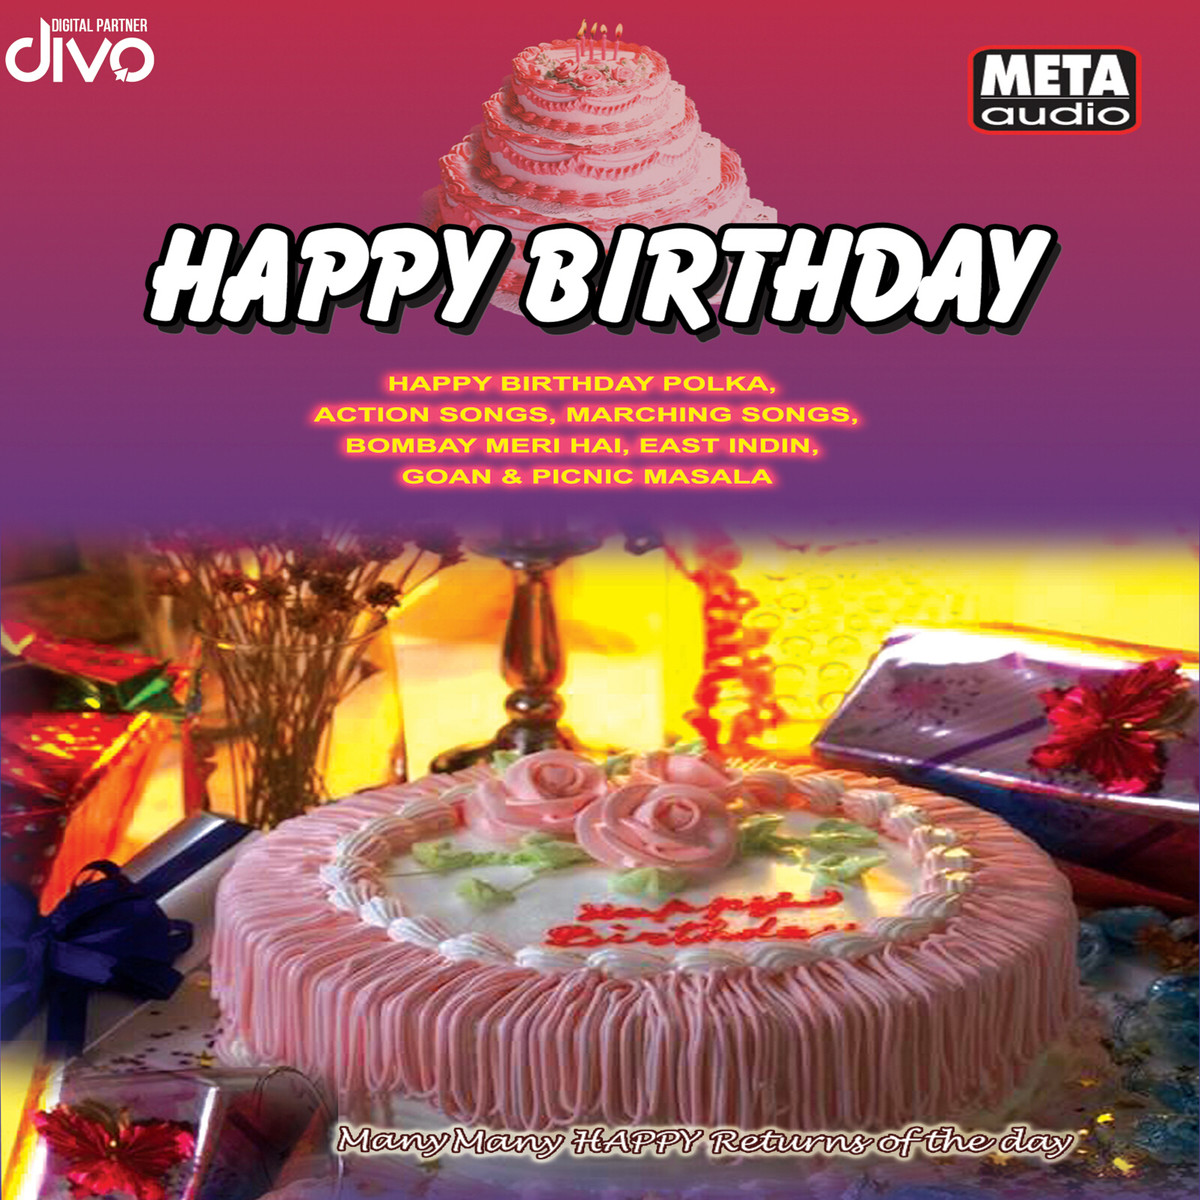 Happy Birthday Songs Download Happy Birthday Mp3 Tamil Songs Online Free On Gaana Com